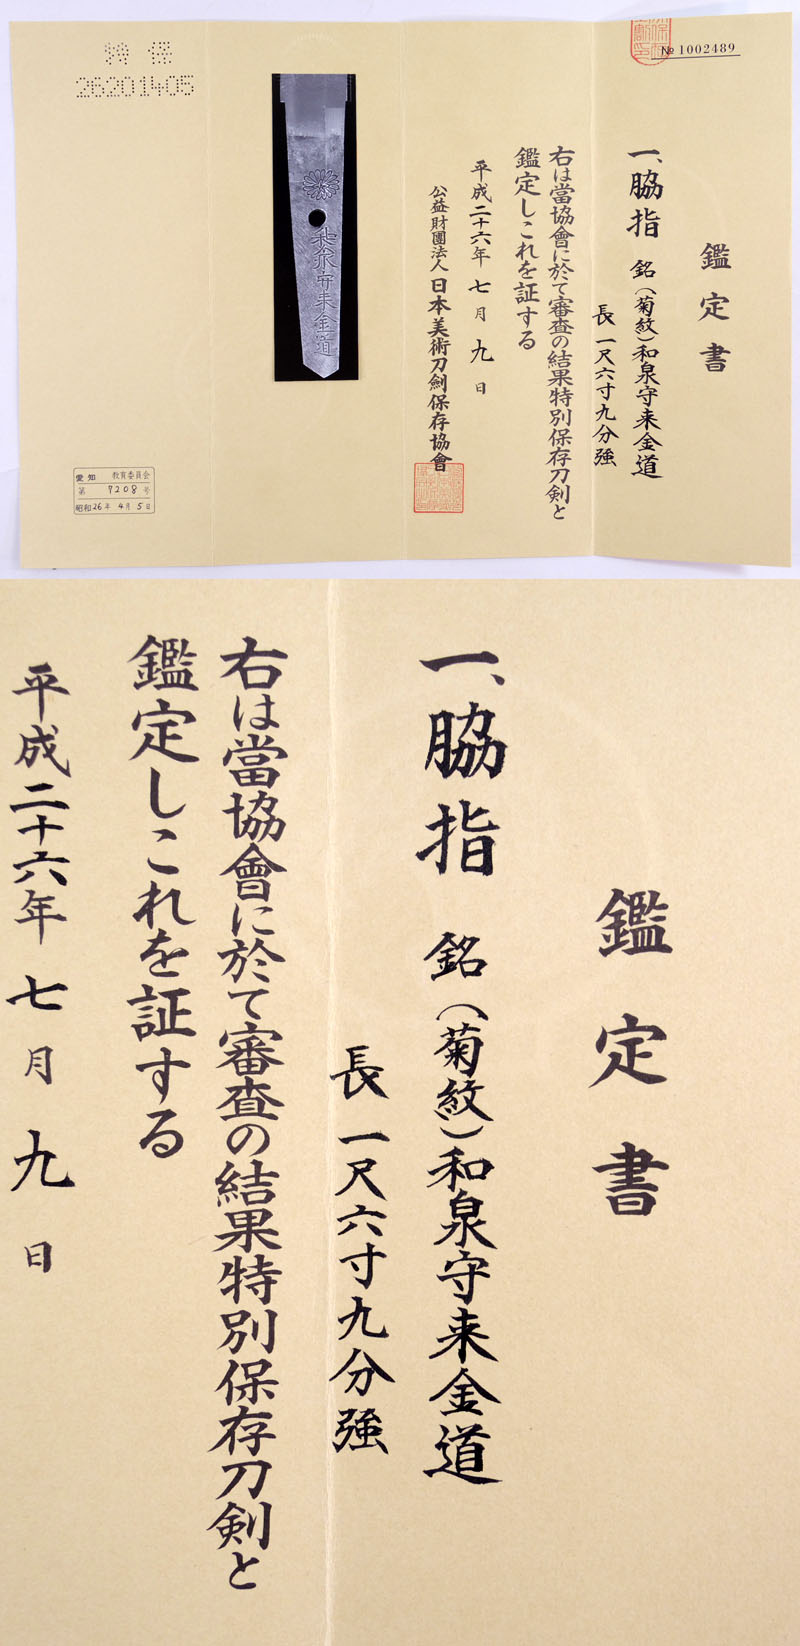 和泉守来金道 Picture of Certificate